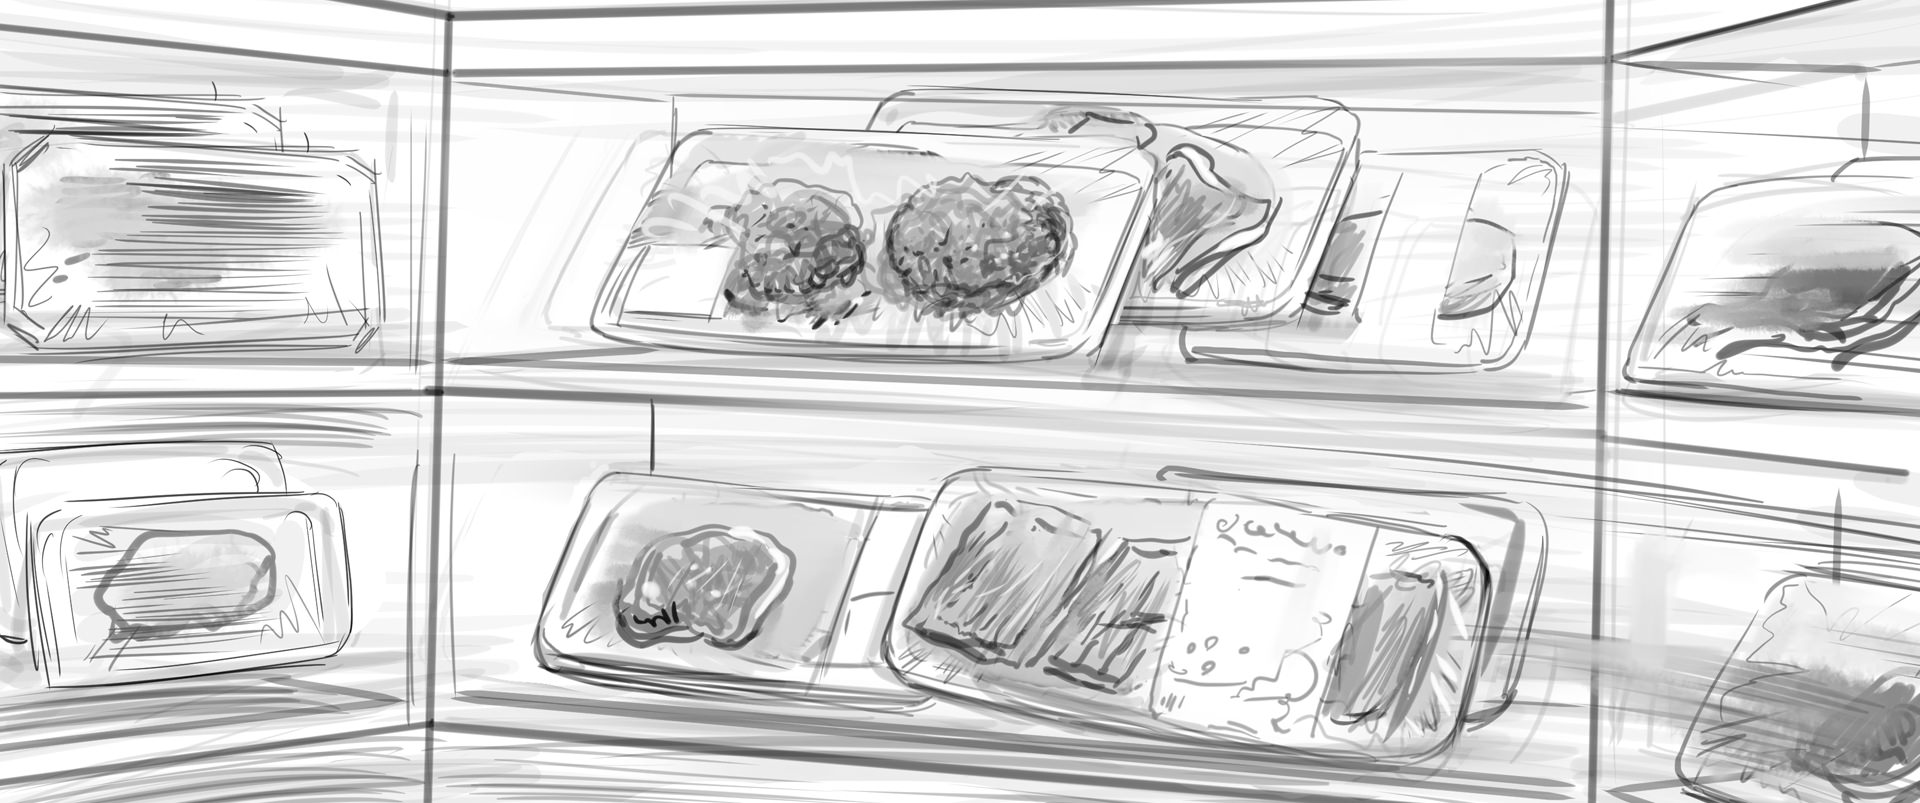 Lidl Vis TV Commercial storyboard 04